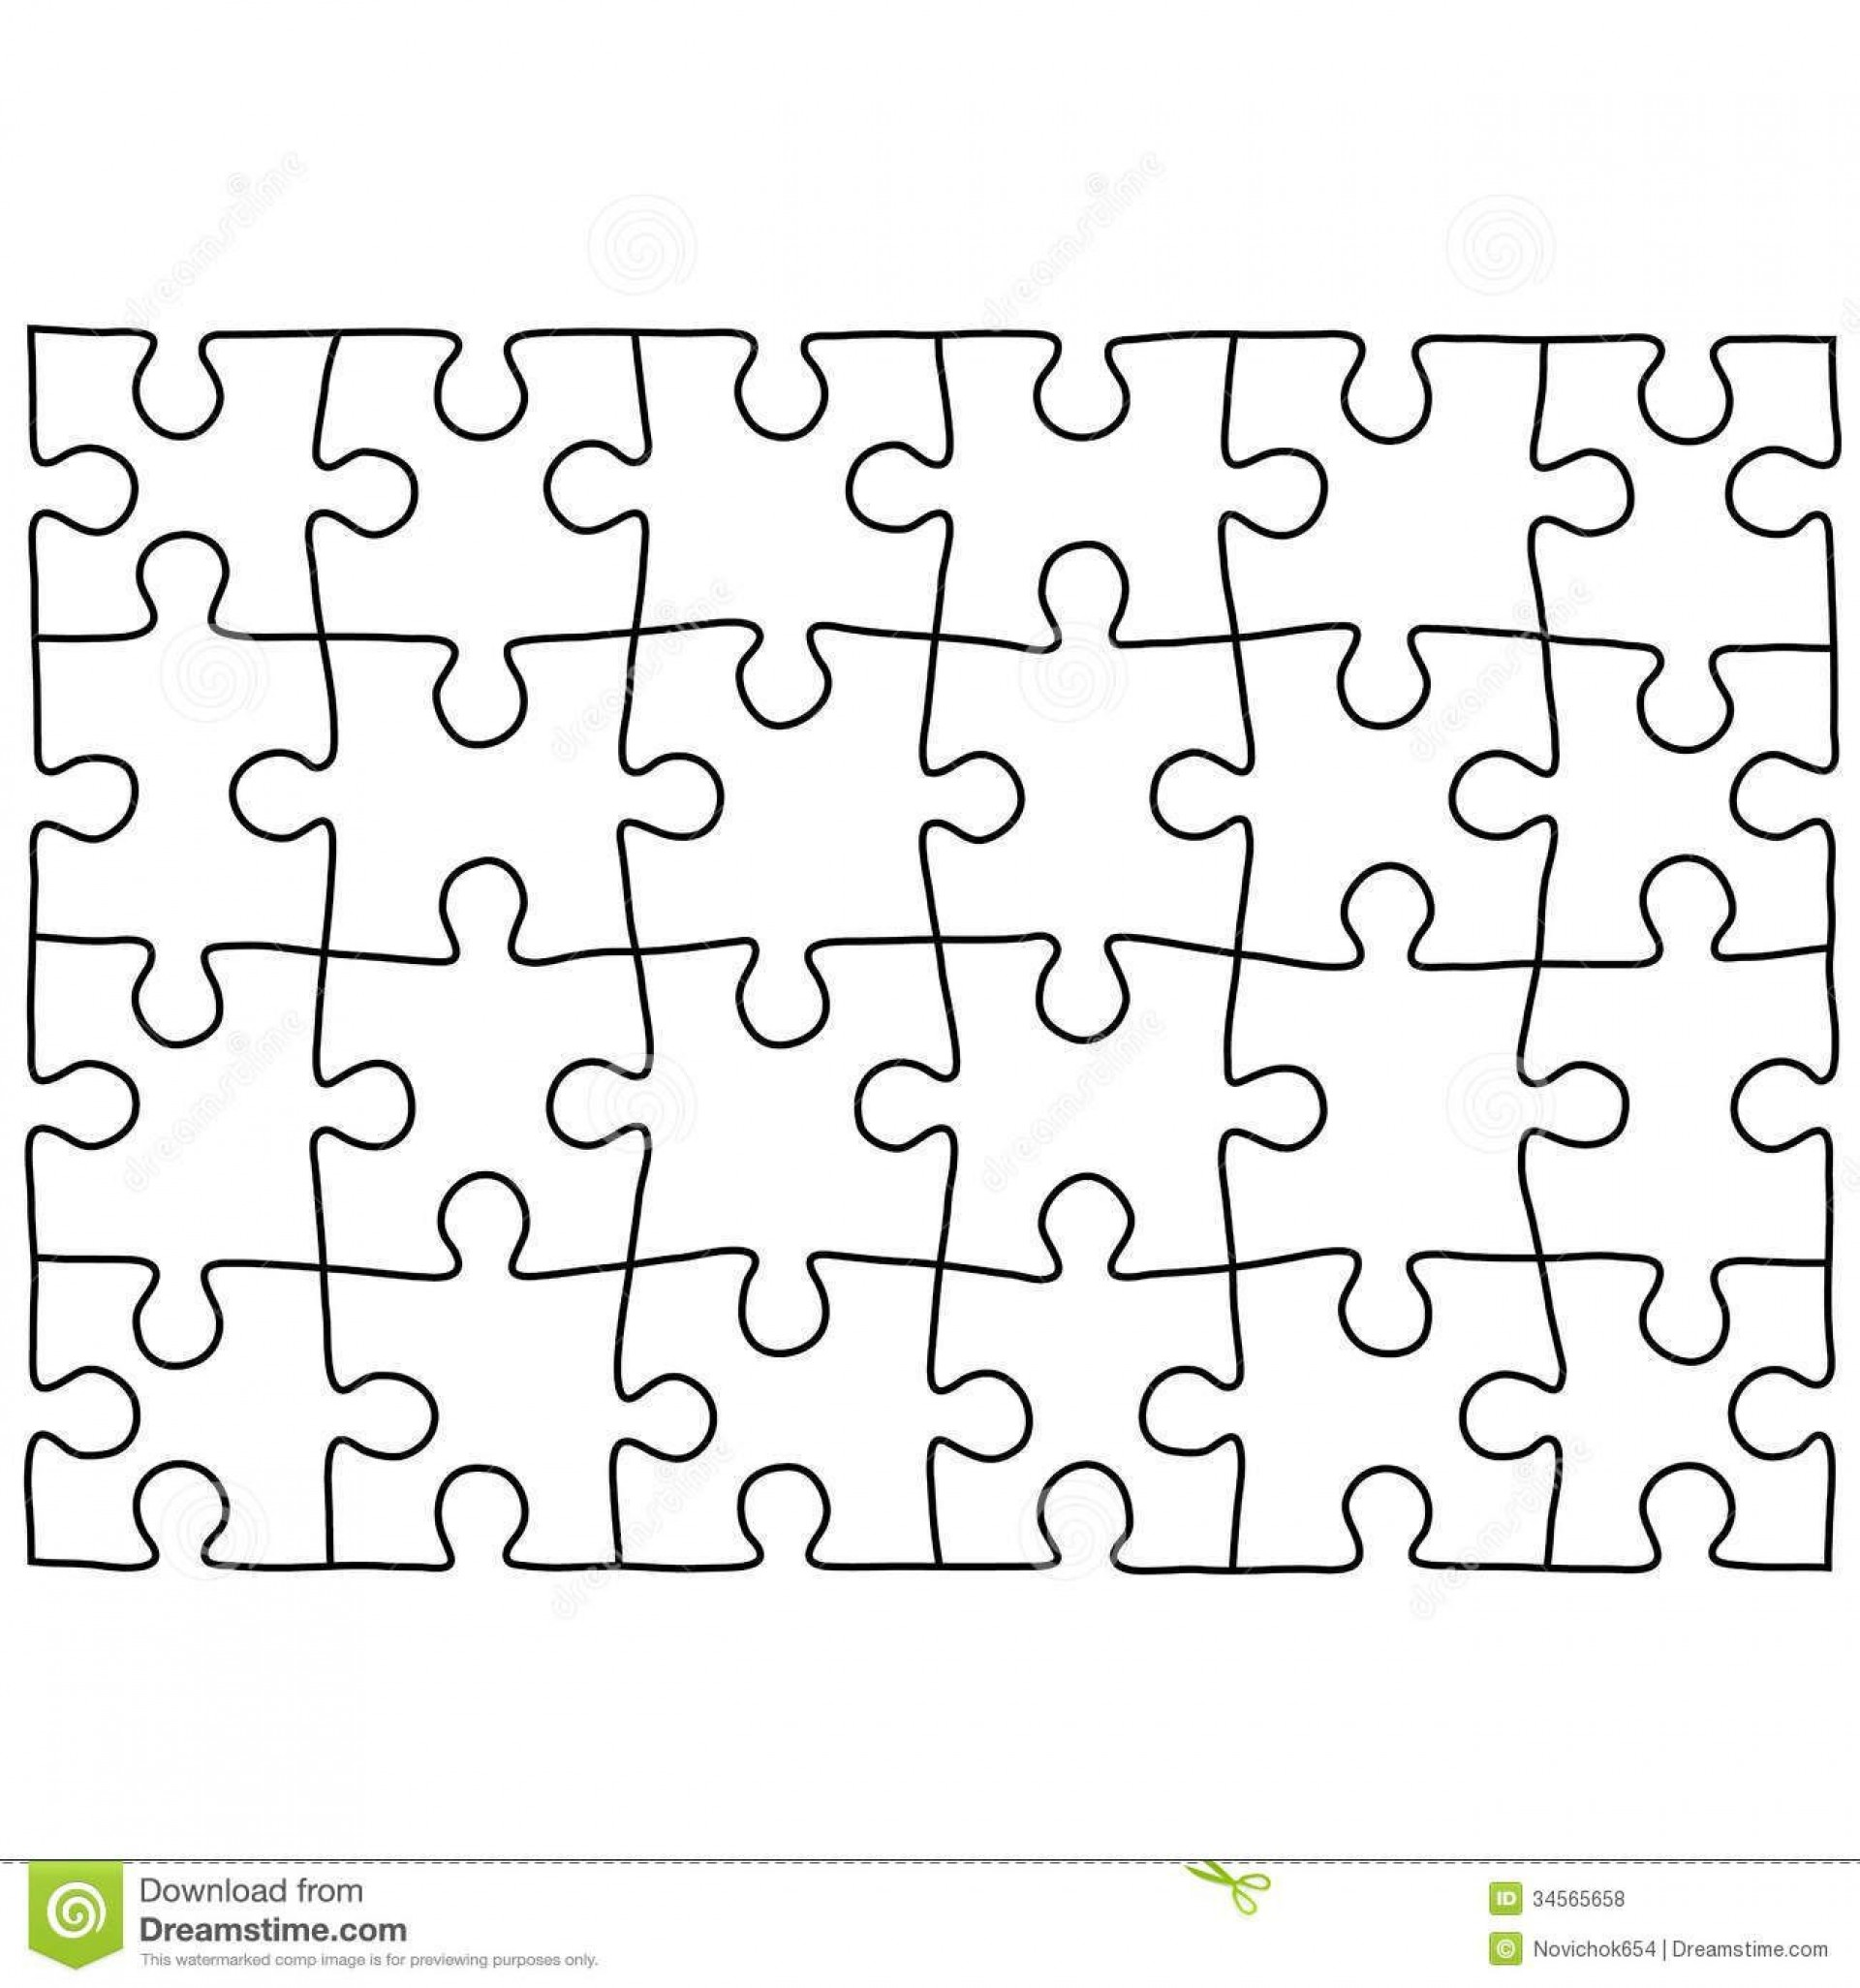 000 Simple Jig Saw Puzzle Template High Def  Printable Blank Jigsaw Vector Free Png1920